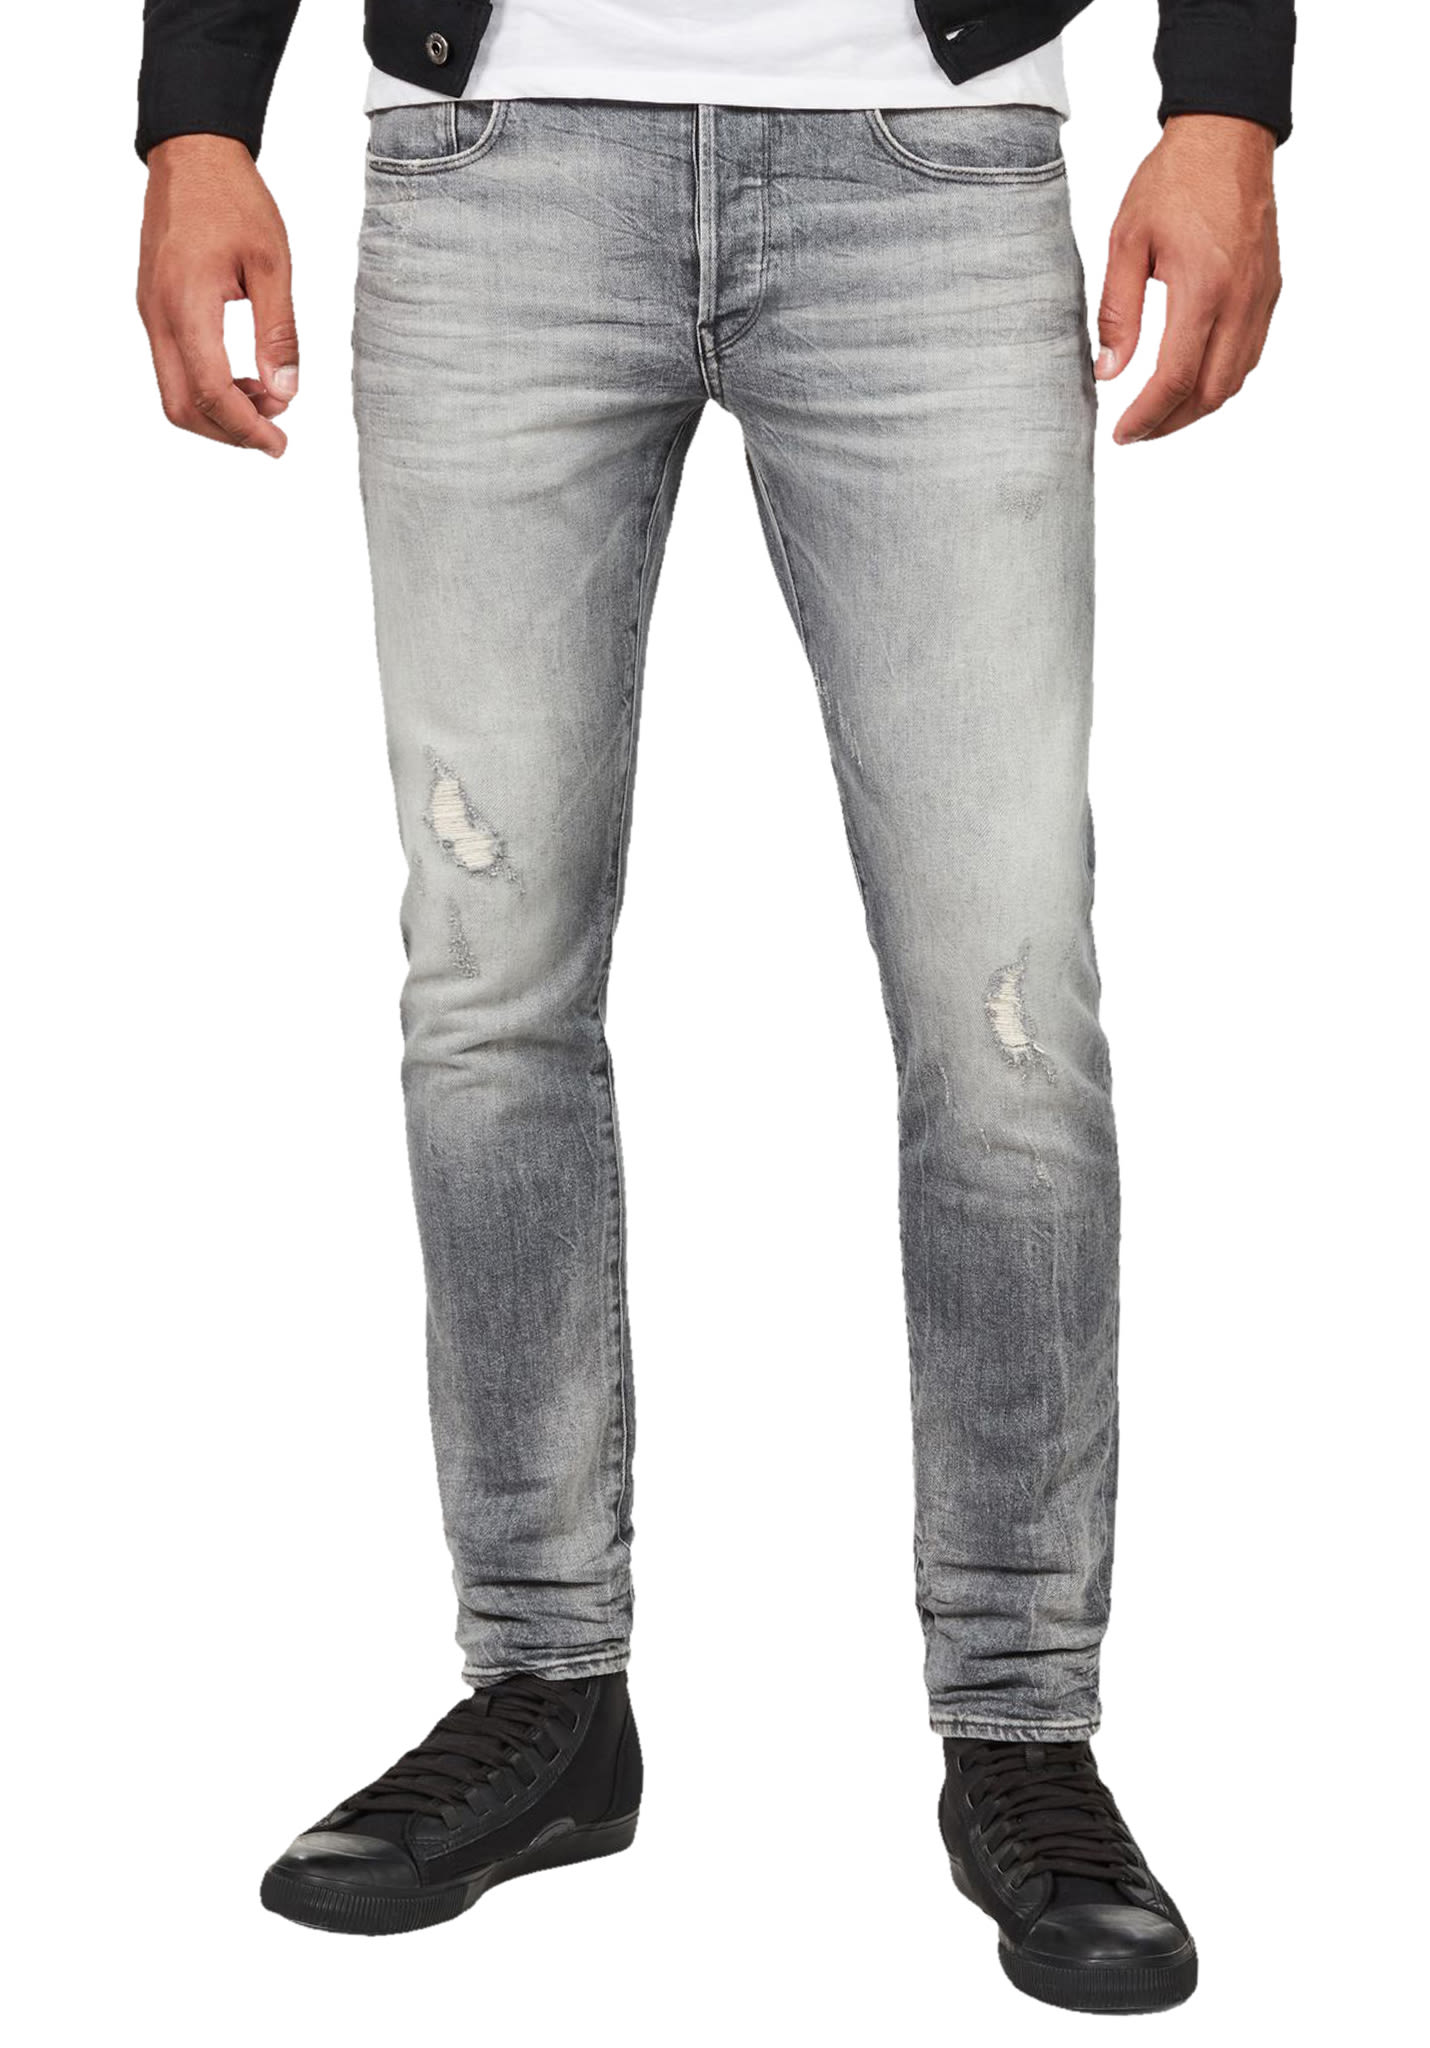 35bb44d65db5be G-STAR 3301 Slim - Denim Jeans for Men - Grey - Planet Sports